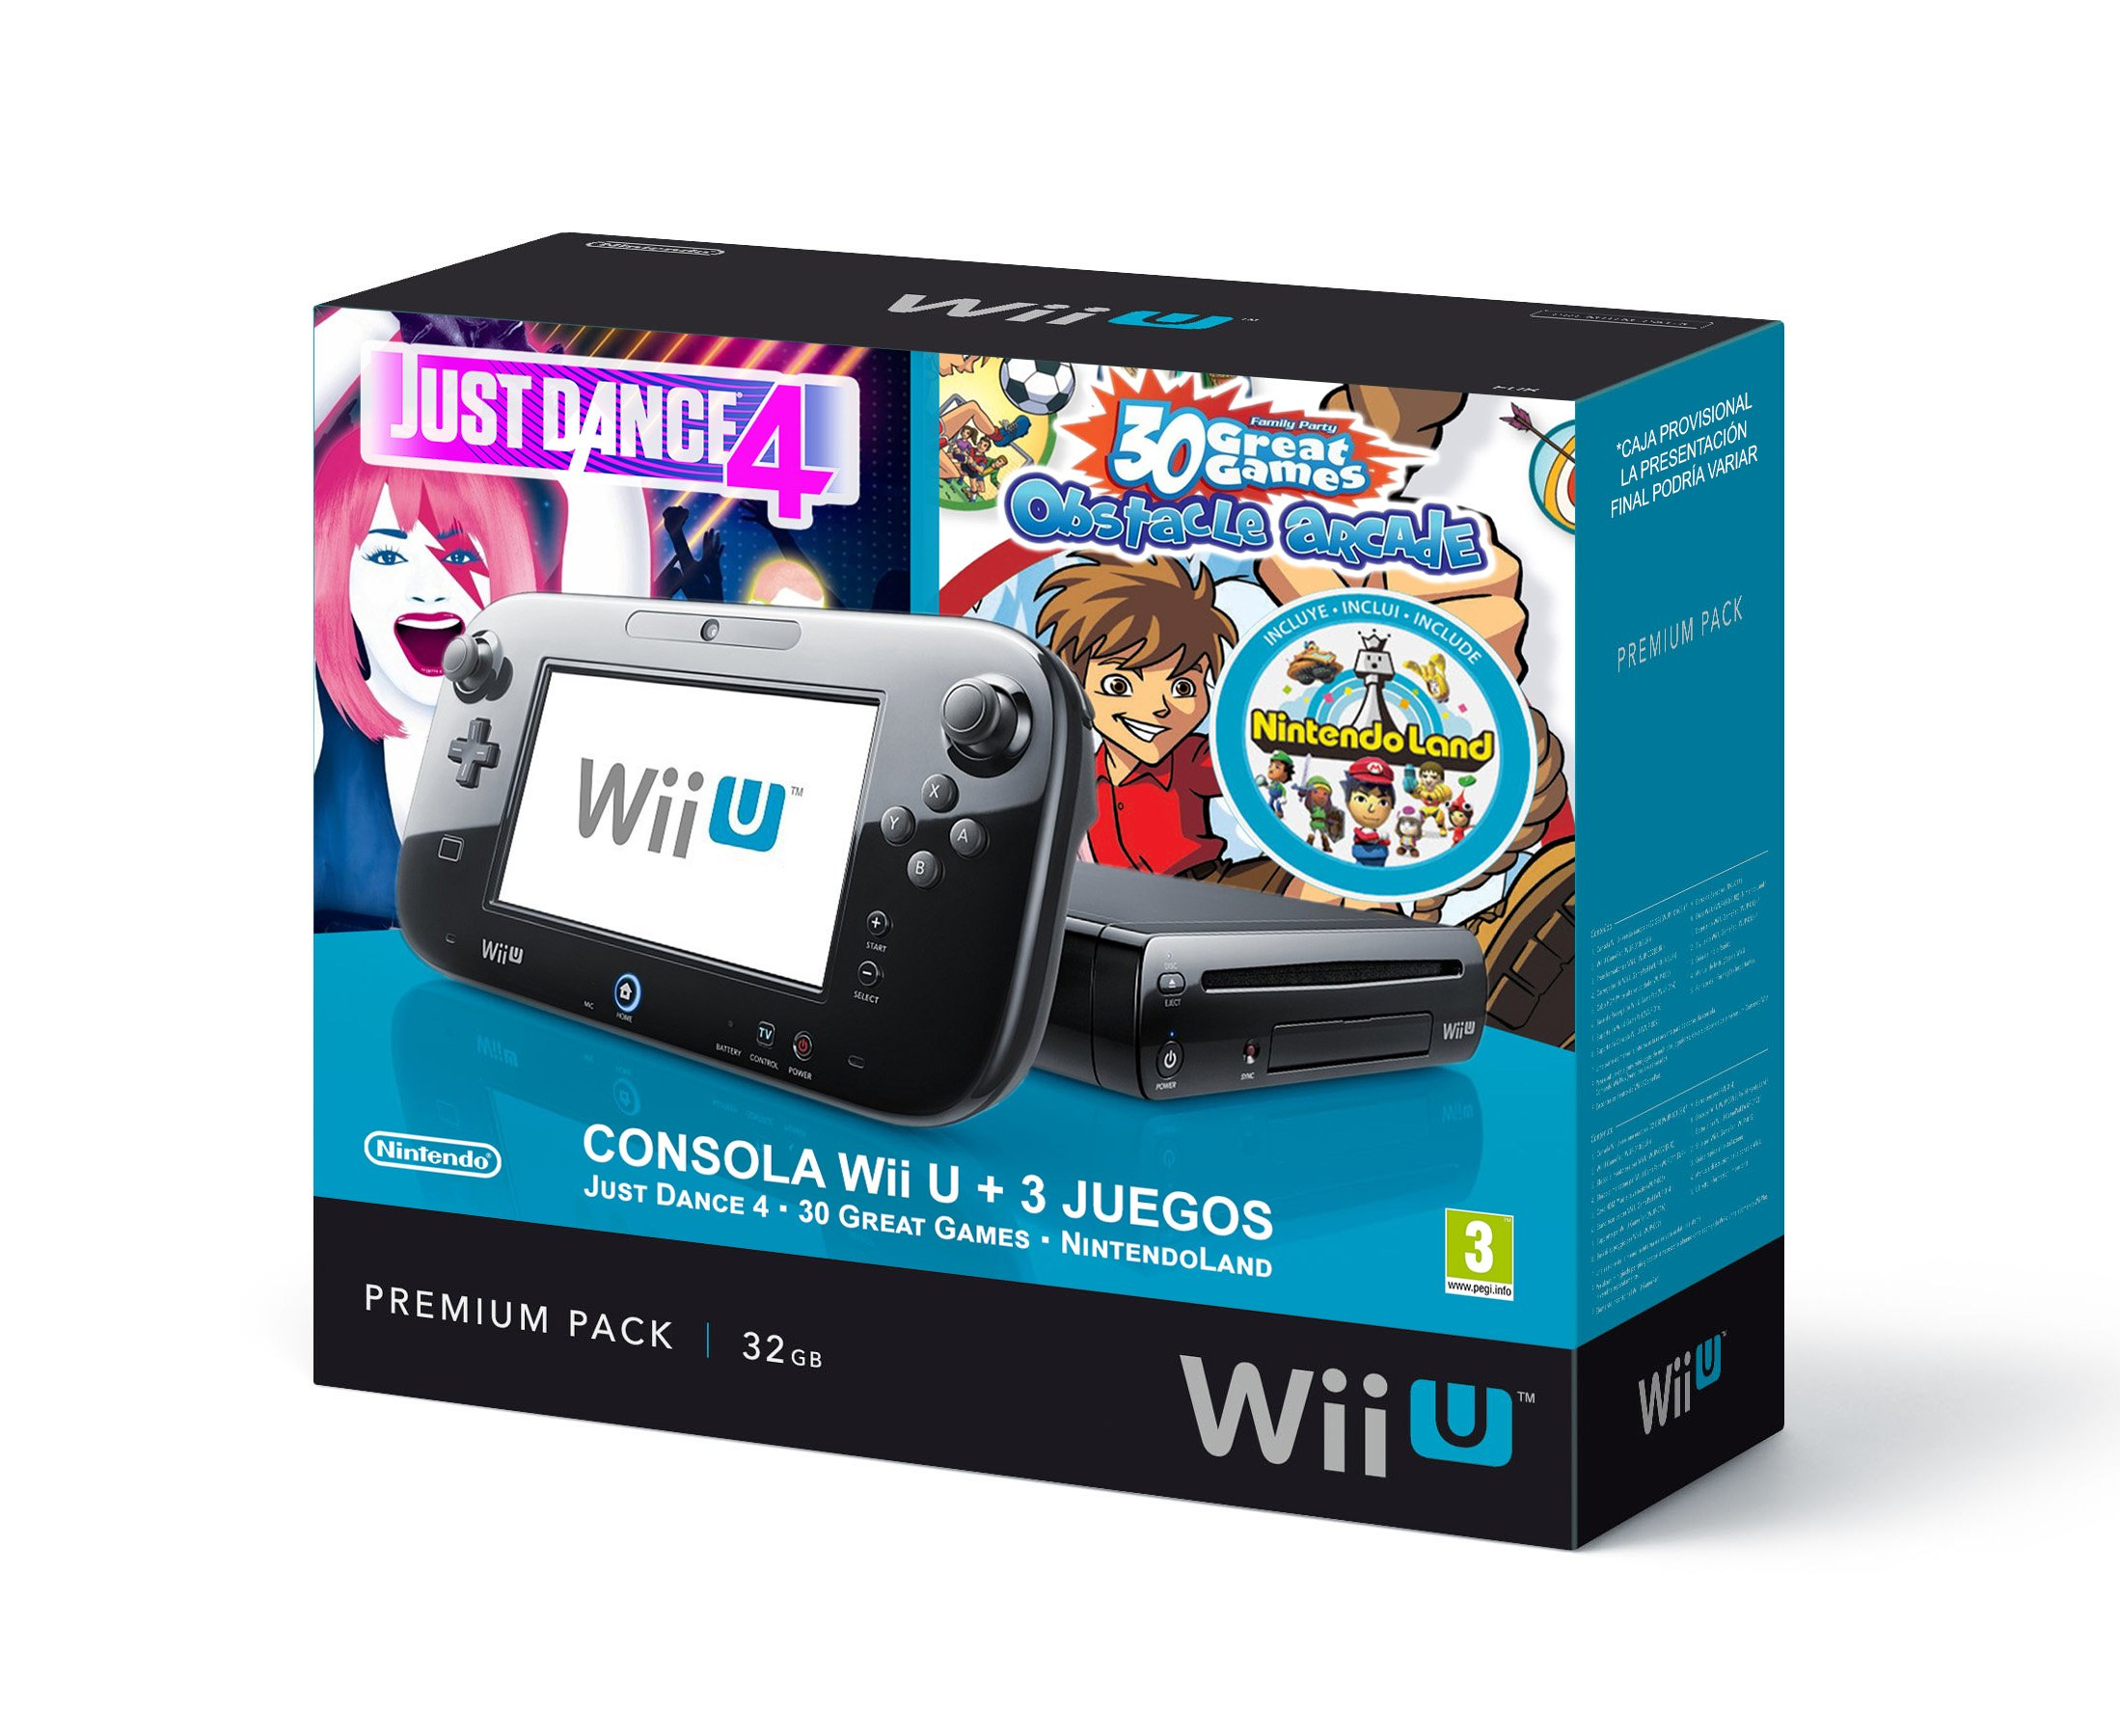 Nintendo Wii U - Premium Triple Pack Consola De 32 GB, Color Negro: Amazon.es: Videojuegos